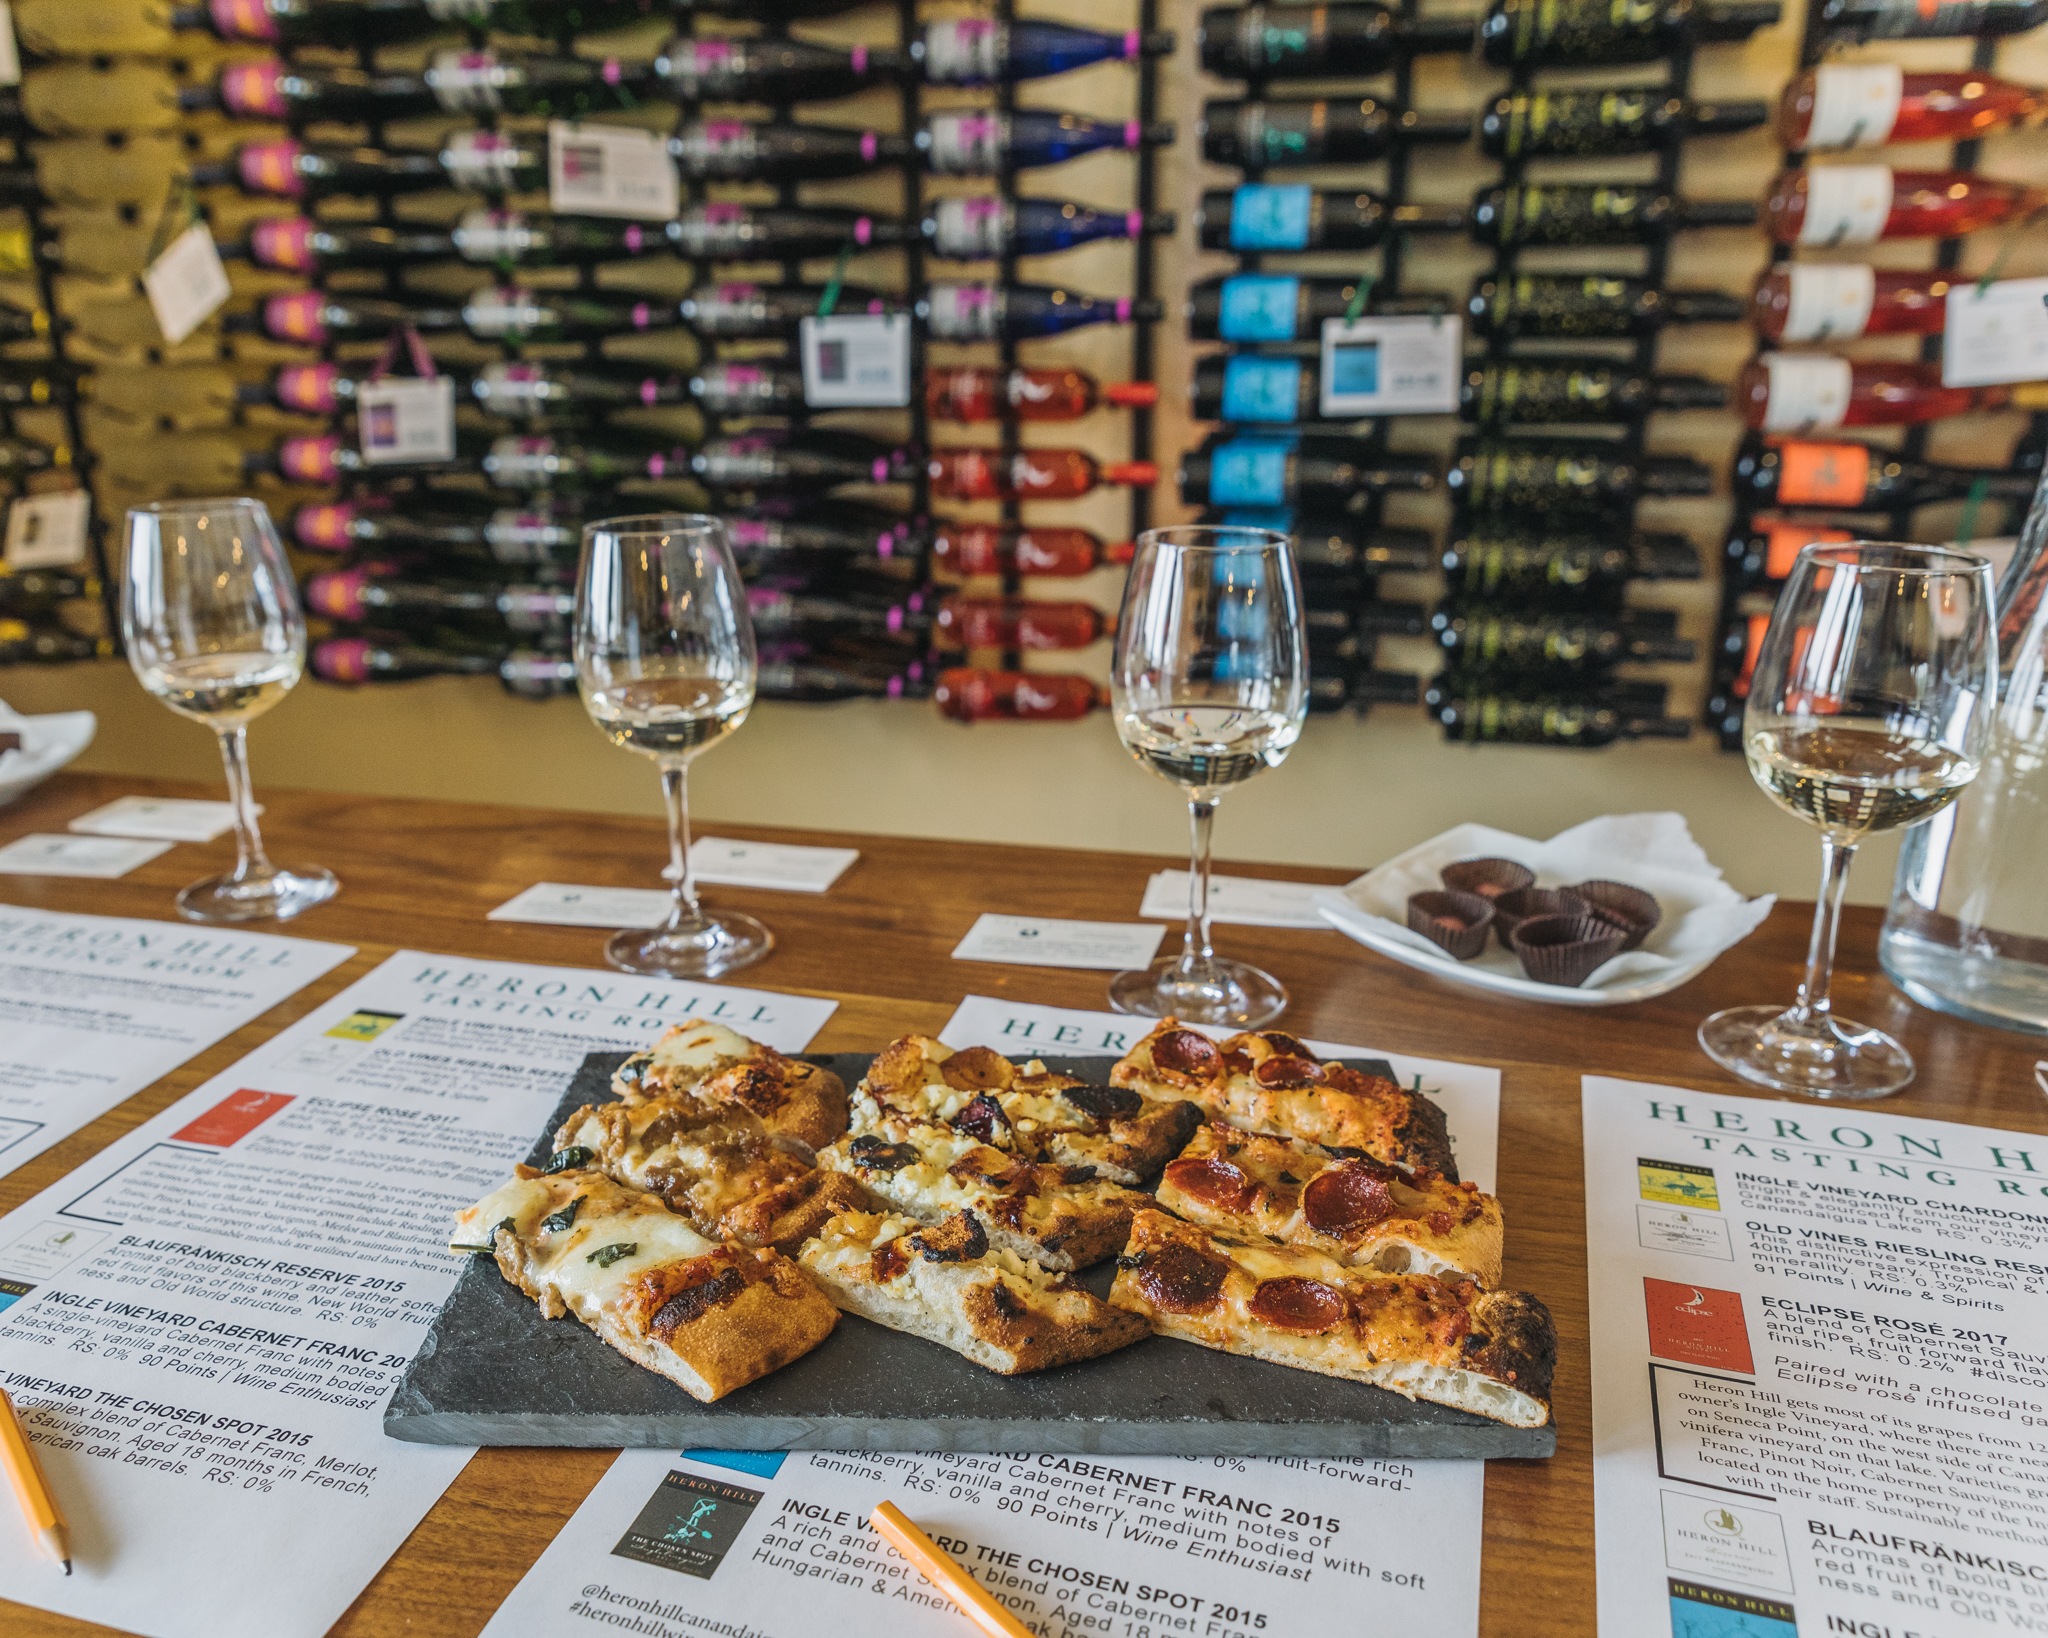 Pizza and wine at Heron Hill Tasting Room // 3 Days in the Finger Lakes: A Wine Trail Itinerary